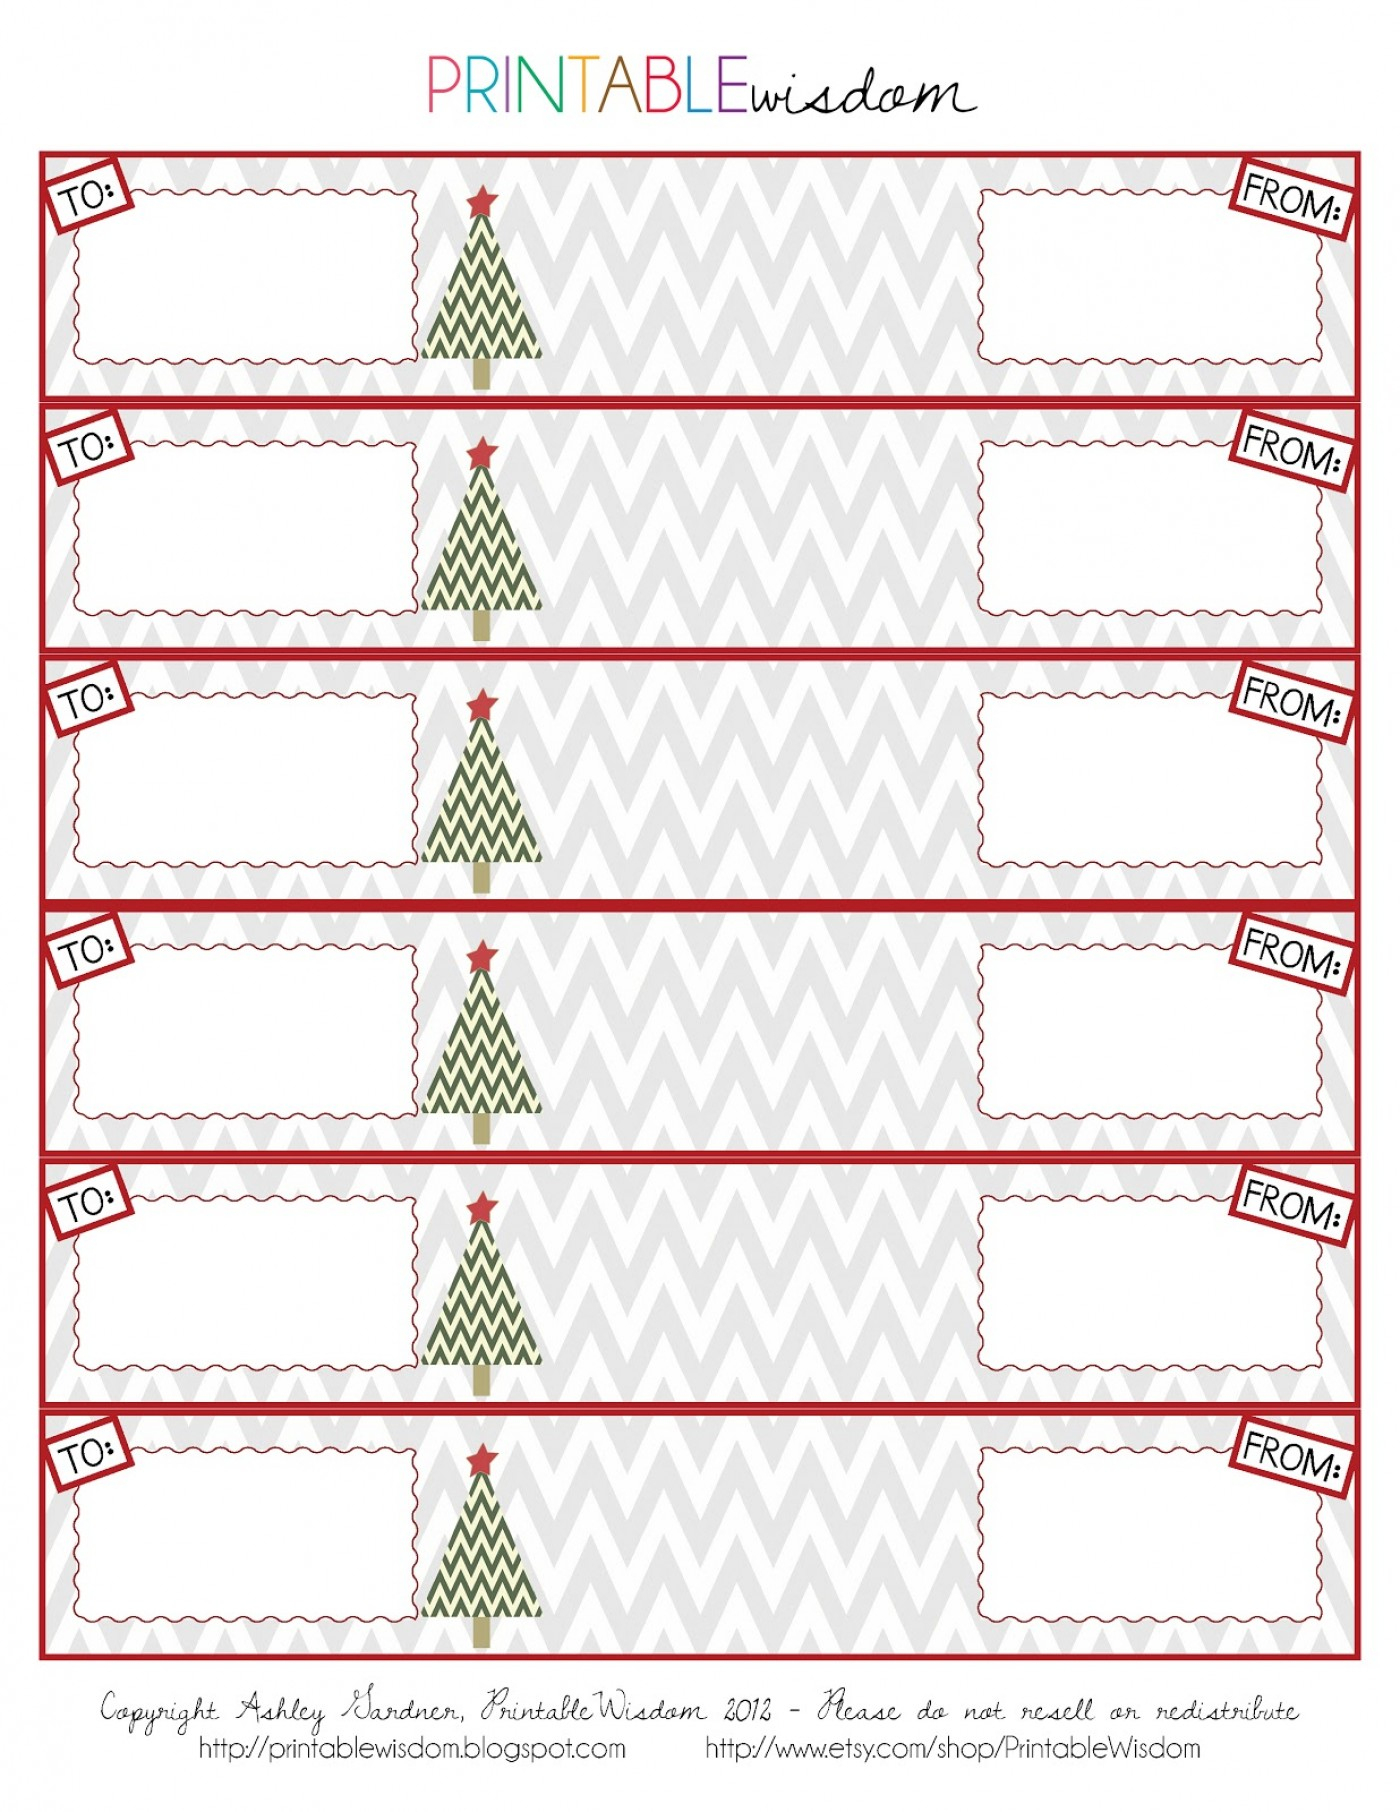 013 Free Printable Address Label Templates Template ~ Ulyssesroom - Free Printable Christmas Address Labels Avery 5160